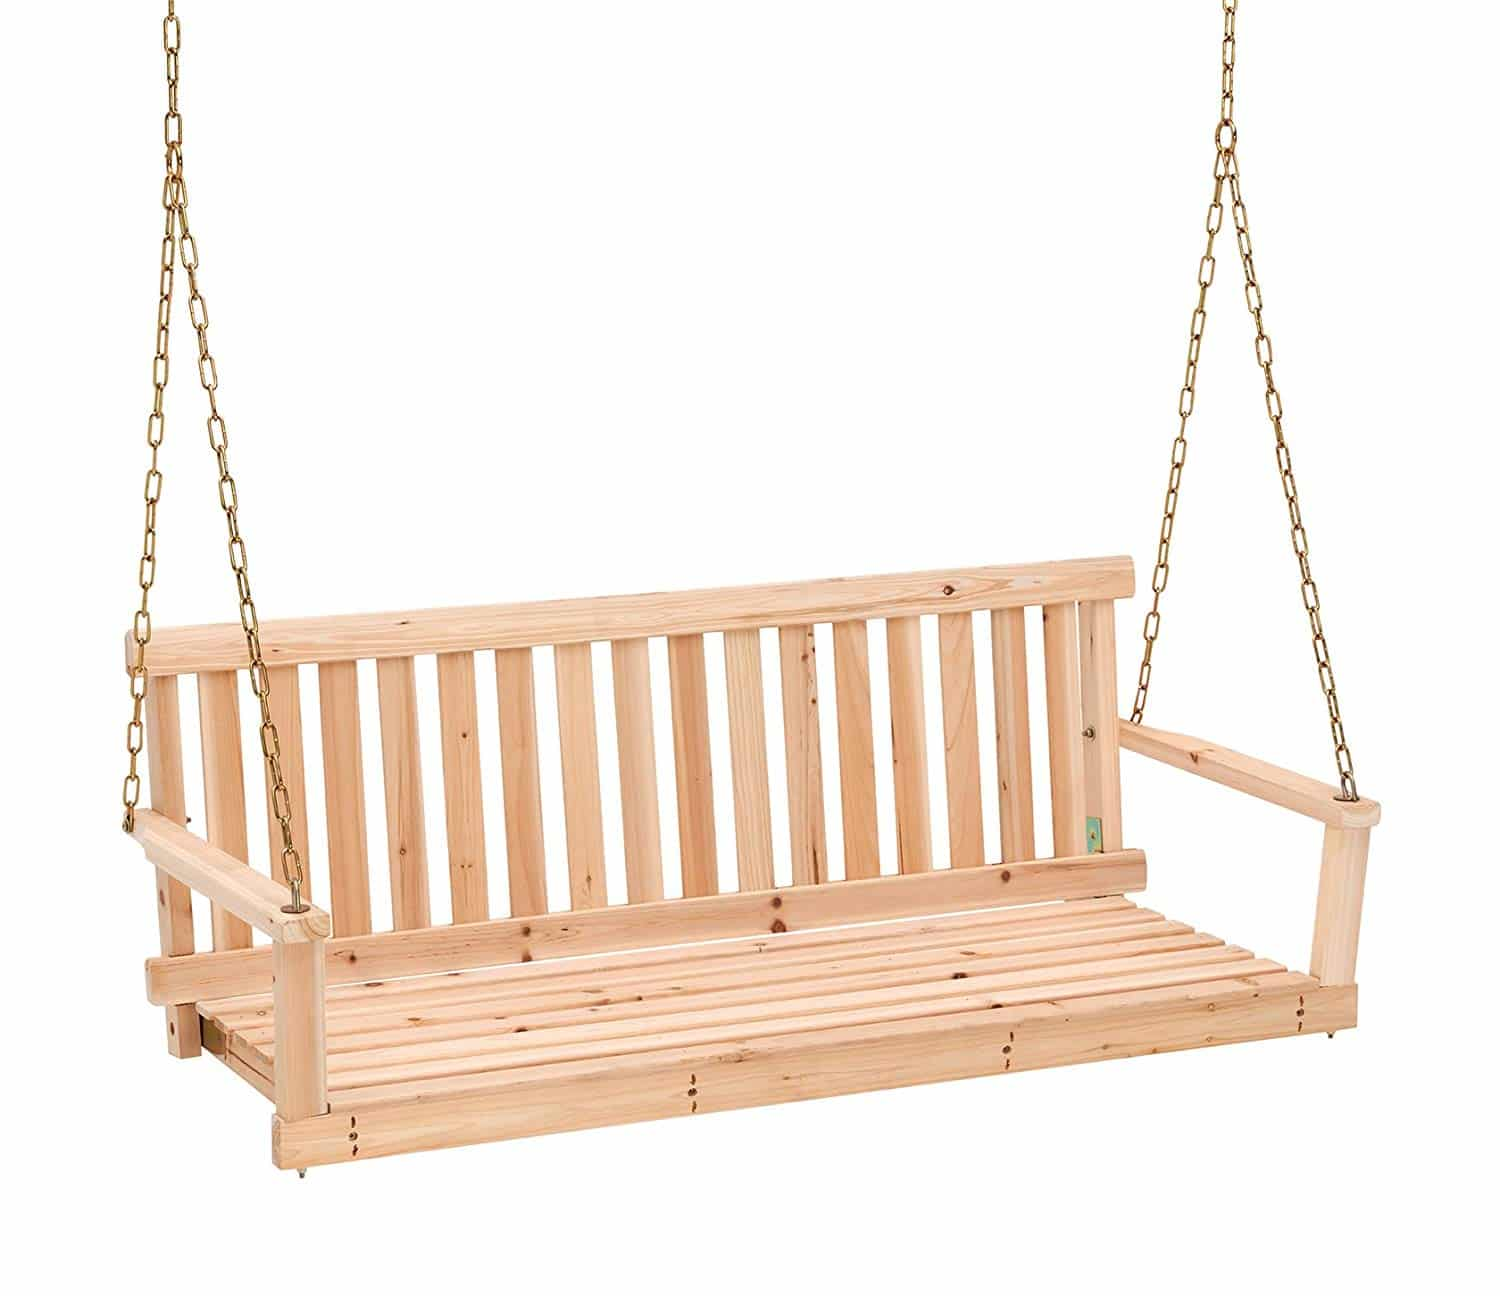 2.   Jack post Jennings traditional swing seat